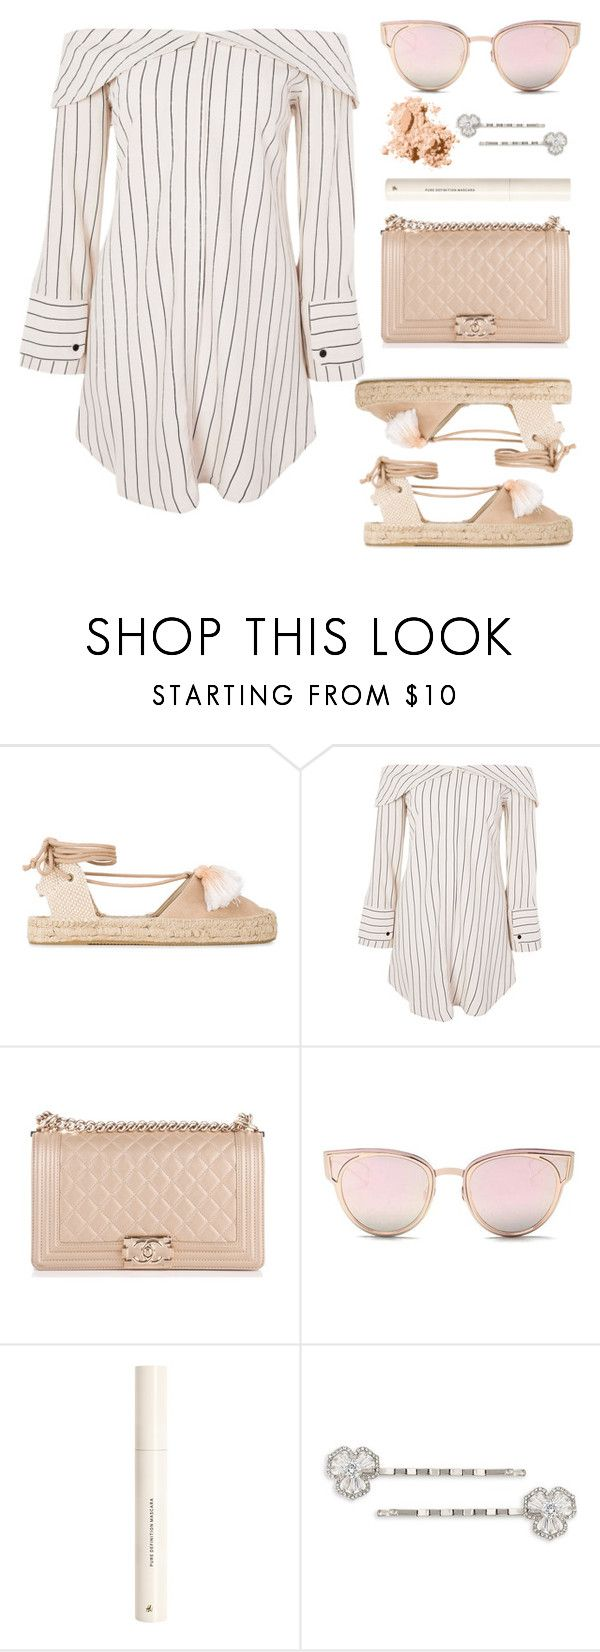 """""""Espadrilles"""" by libbytu ❤ liked on Polyvore featuring Soludos, Topshop, Chanel, LMNT, H&M, Carolee and Bobbi Brown Cosmetics"""